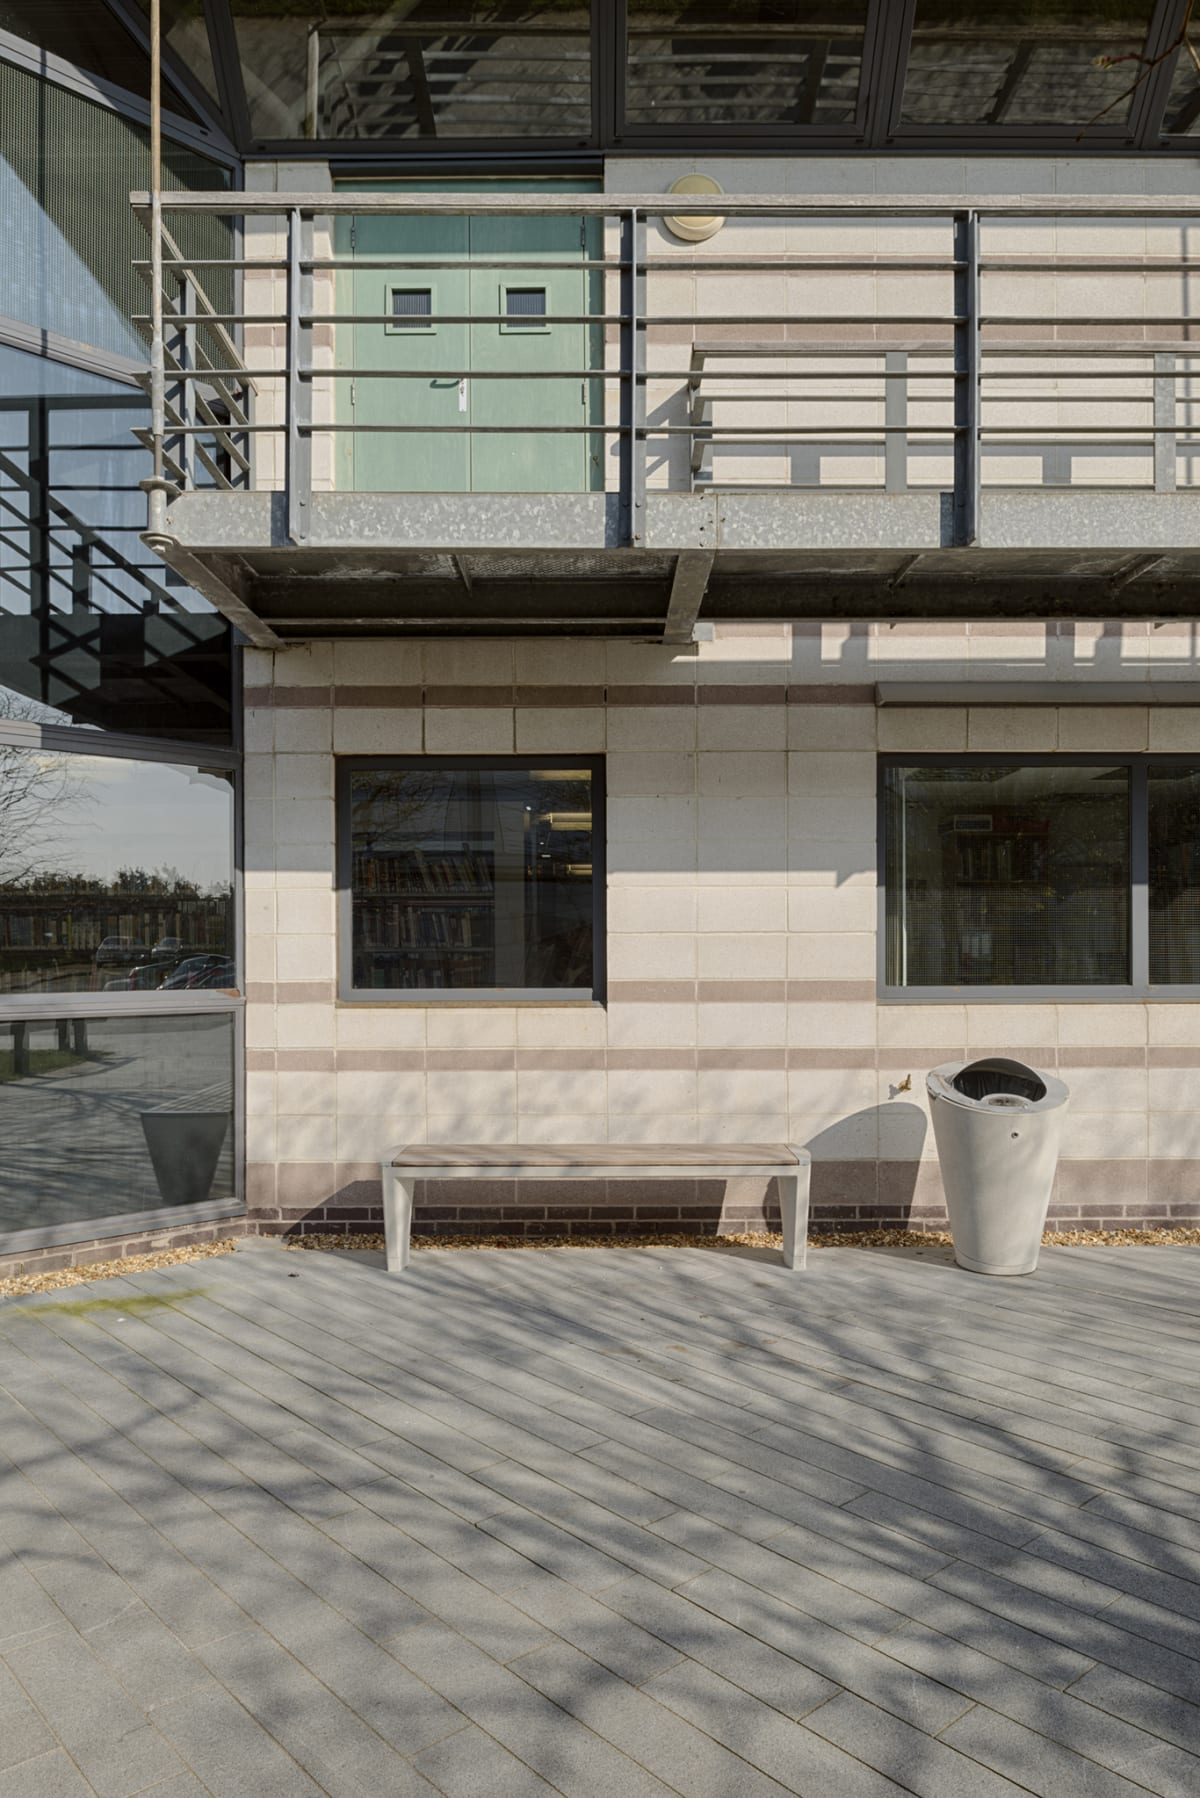 Coda Litter Bin and Bench, Poole